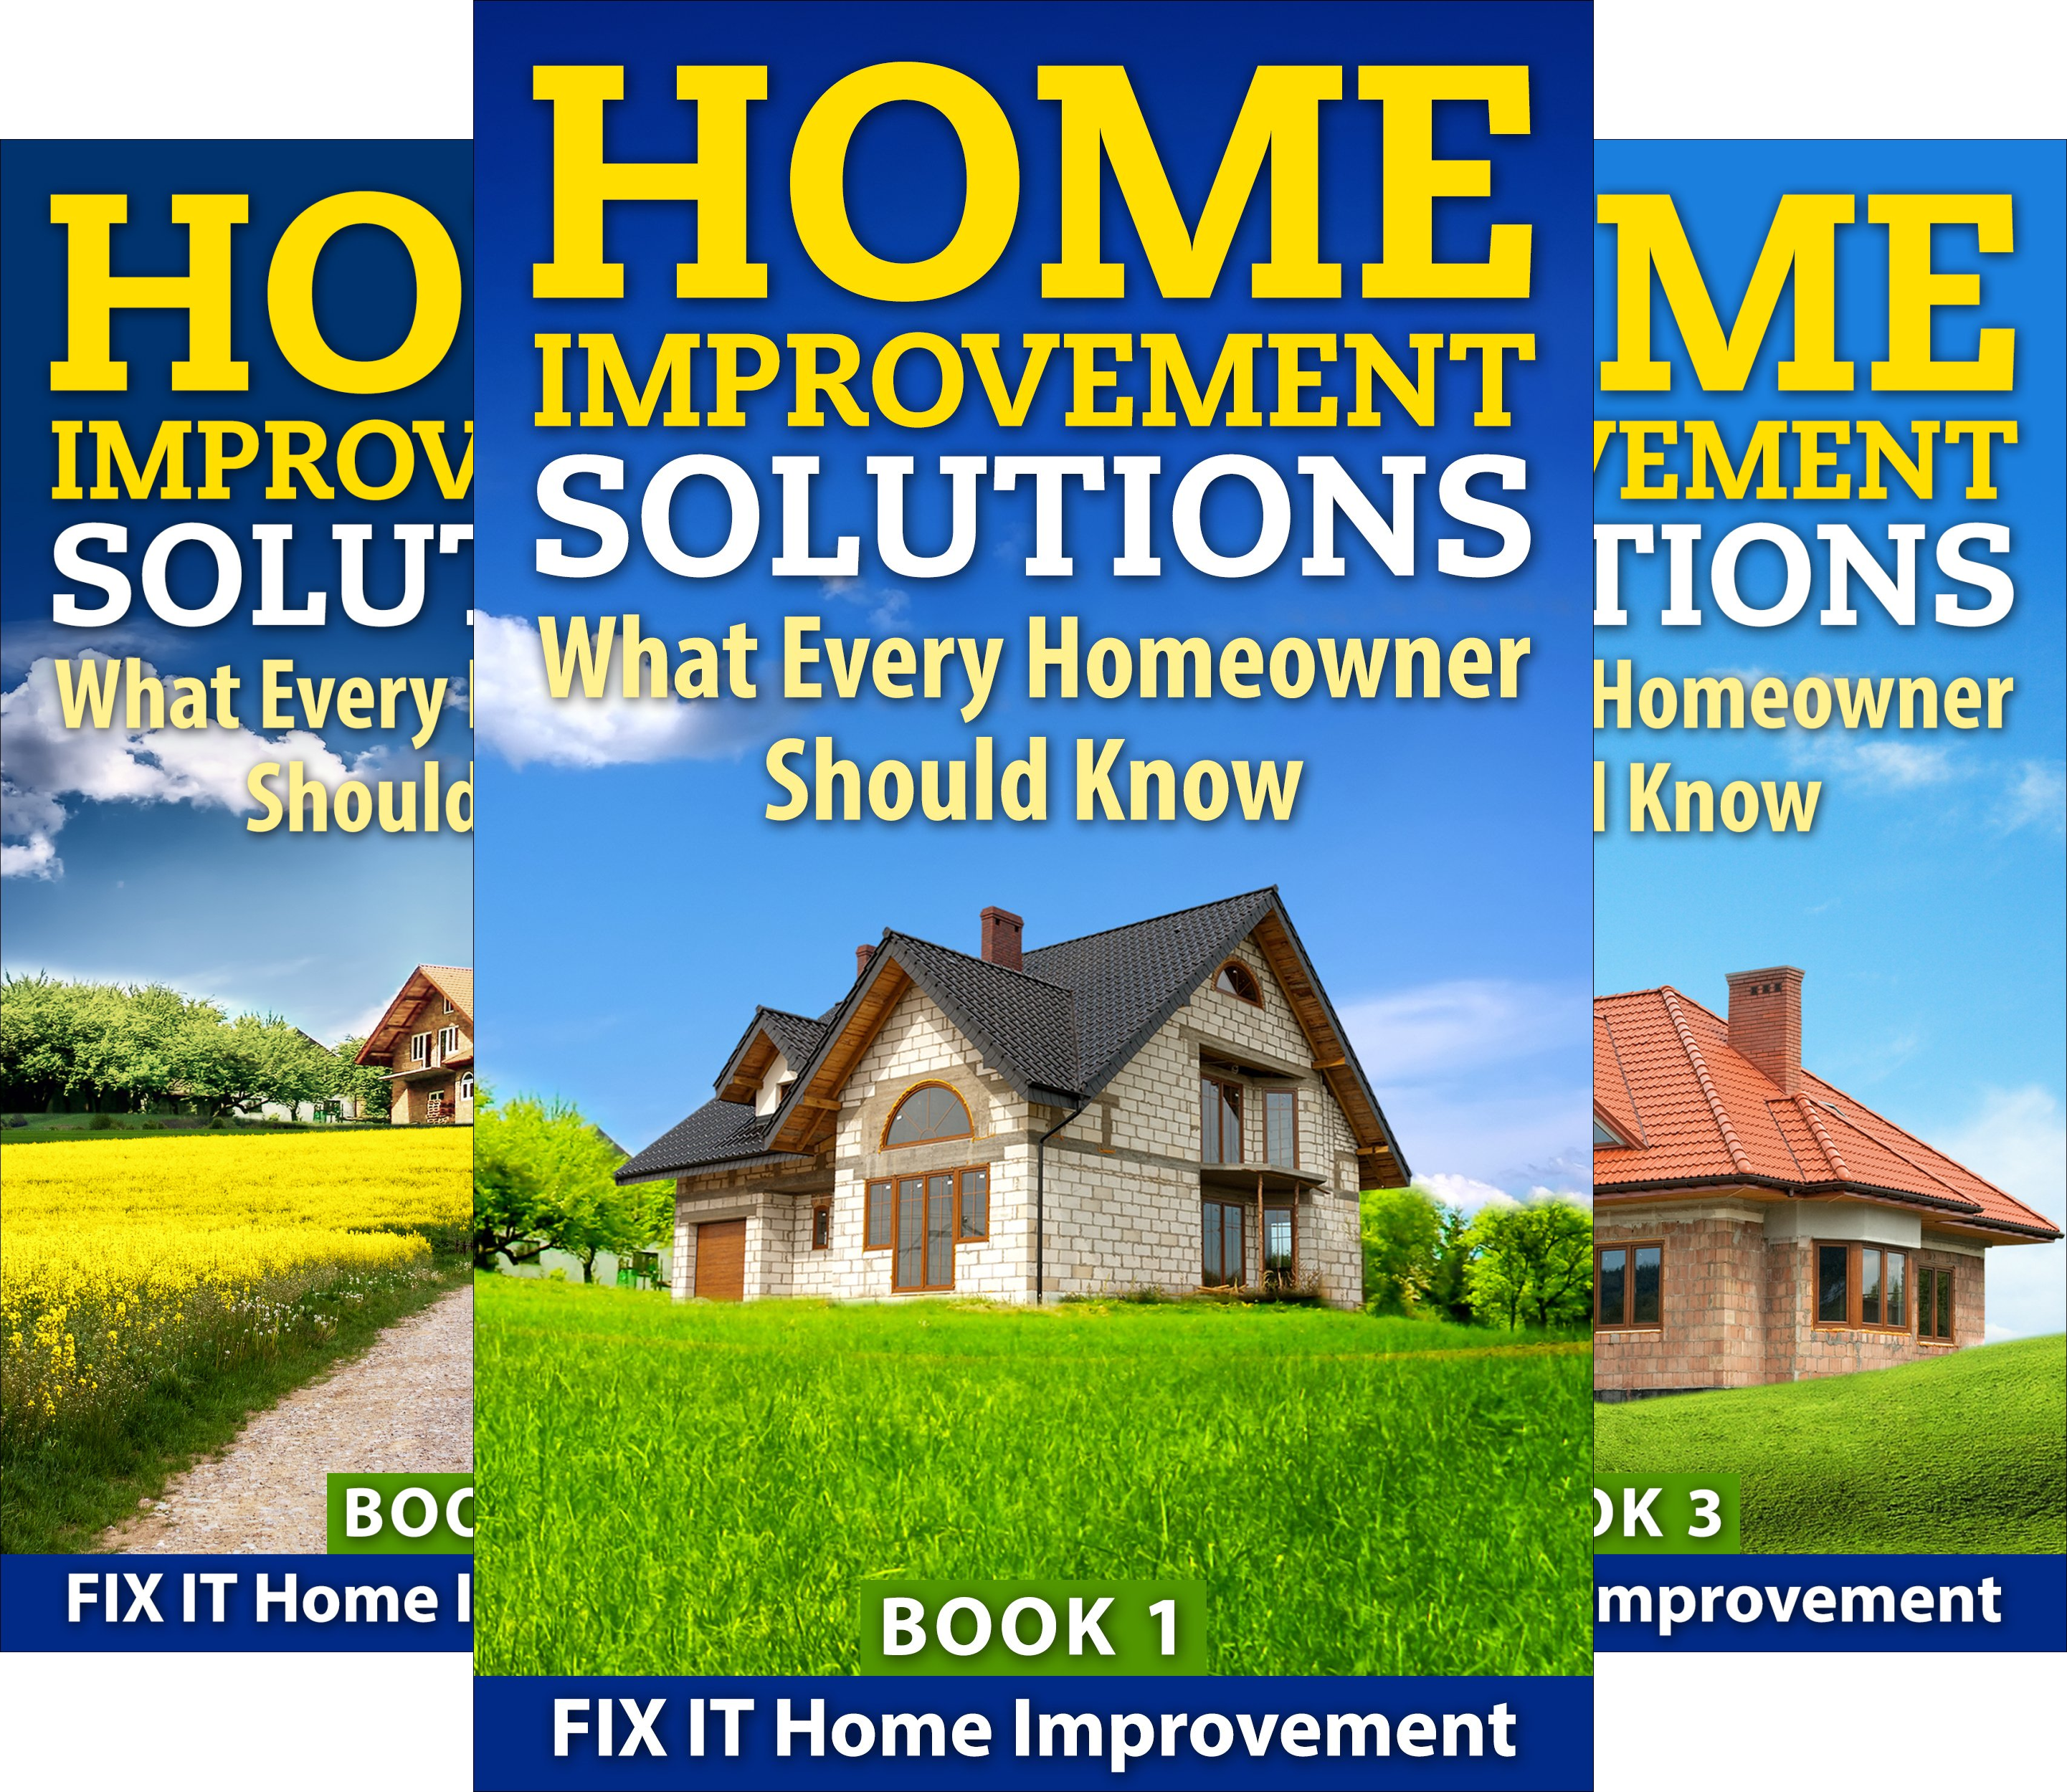 Home Improvement Solutions (3 Book Series)